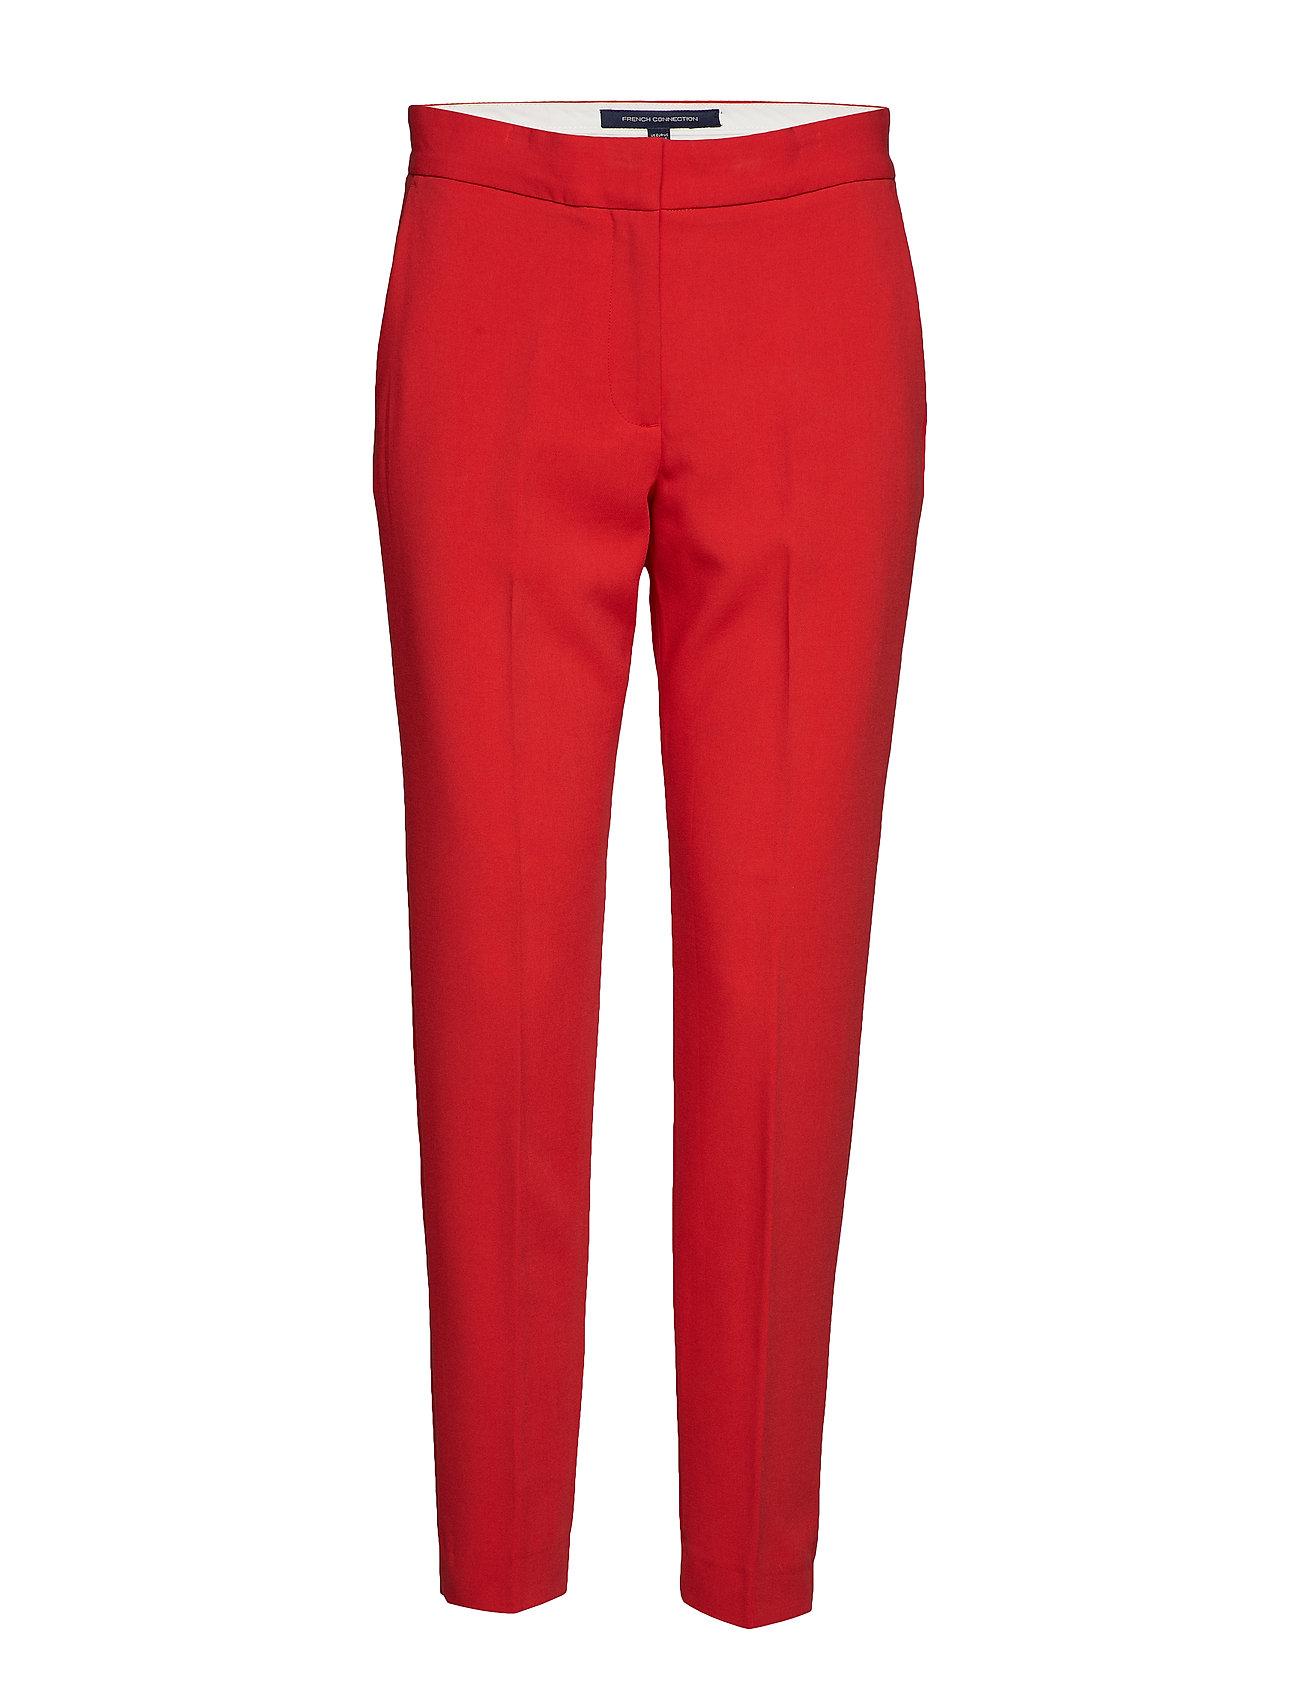 French Connection WHISPER RUTH TAILOröd TROUSERS Byxor